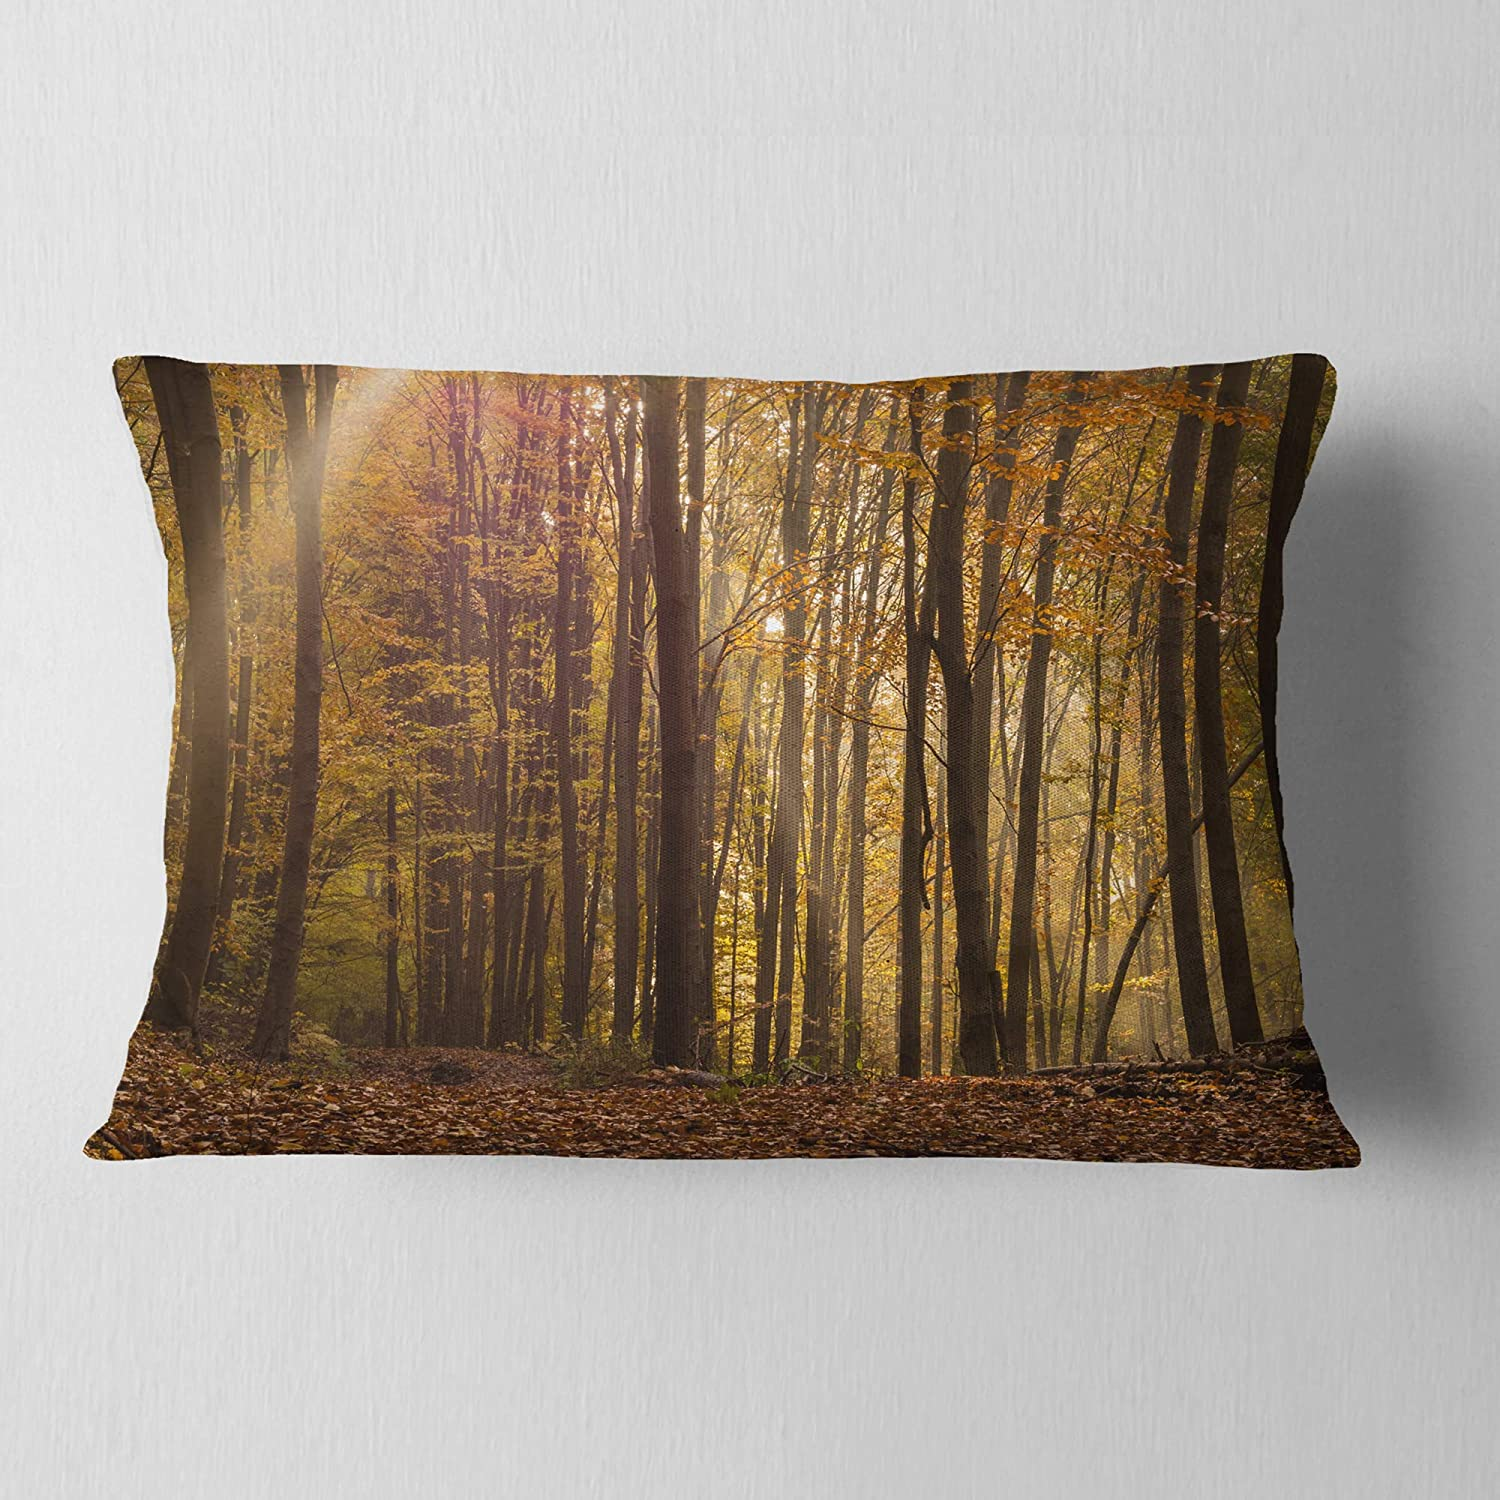 Designart CU13996-12-20 Dense Rays of Rising Sun' Forest Lumbar Cushion Cover for Living Room, Sofa Throw Pillow, 12 in. x 20 in. in, Insert Printed On Both Side